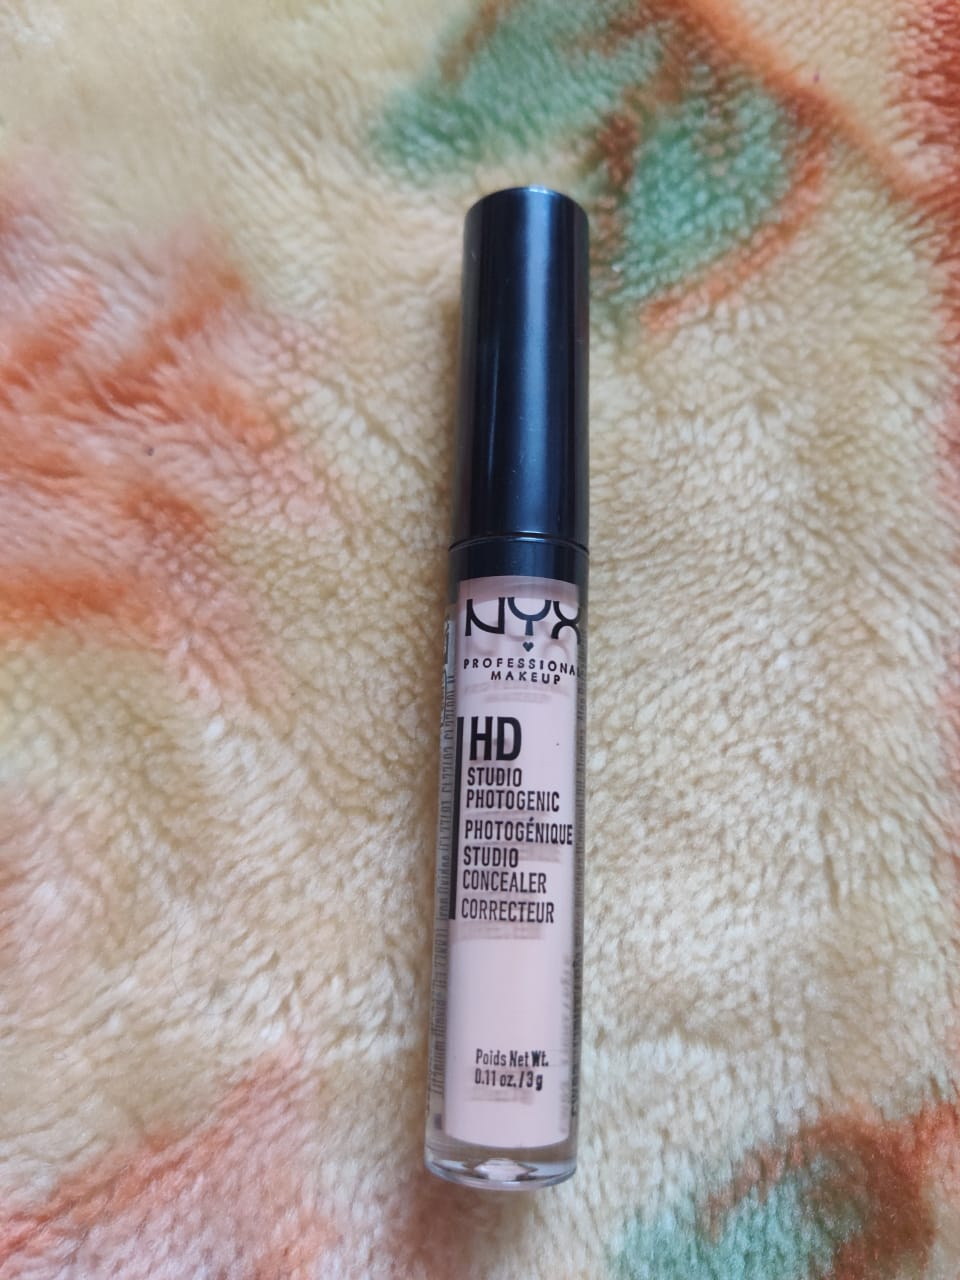 NYX Professional Makeup HD Studio Photogenic Concealer Wand-It works like a magic wand!-By poonam_kakkar